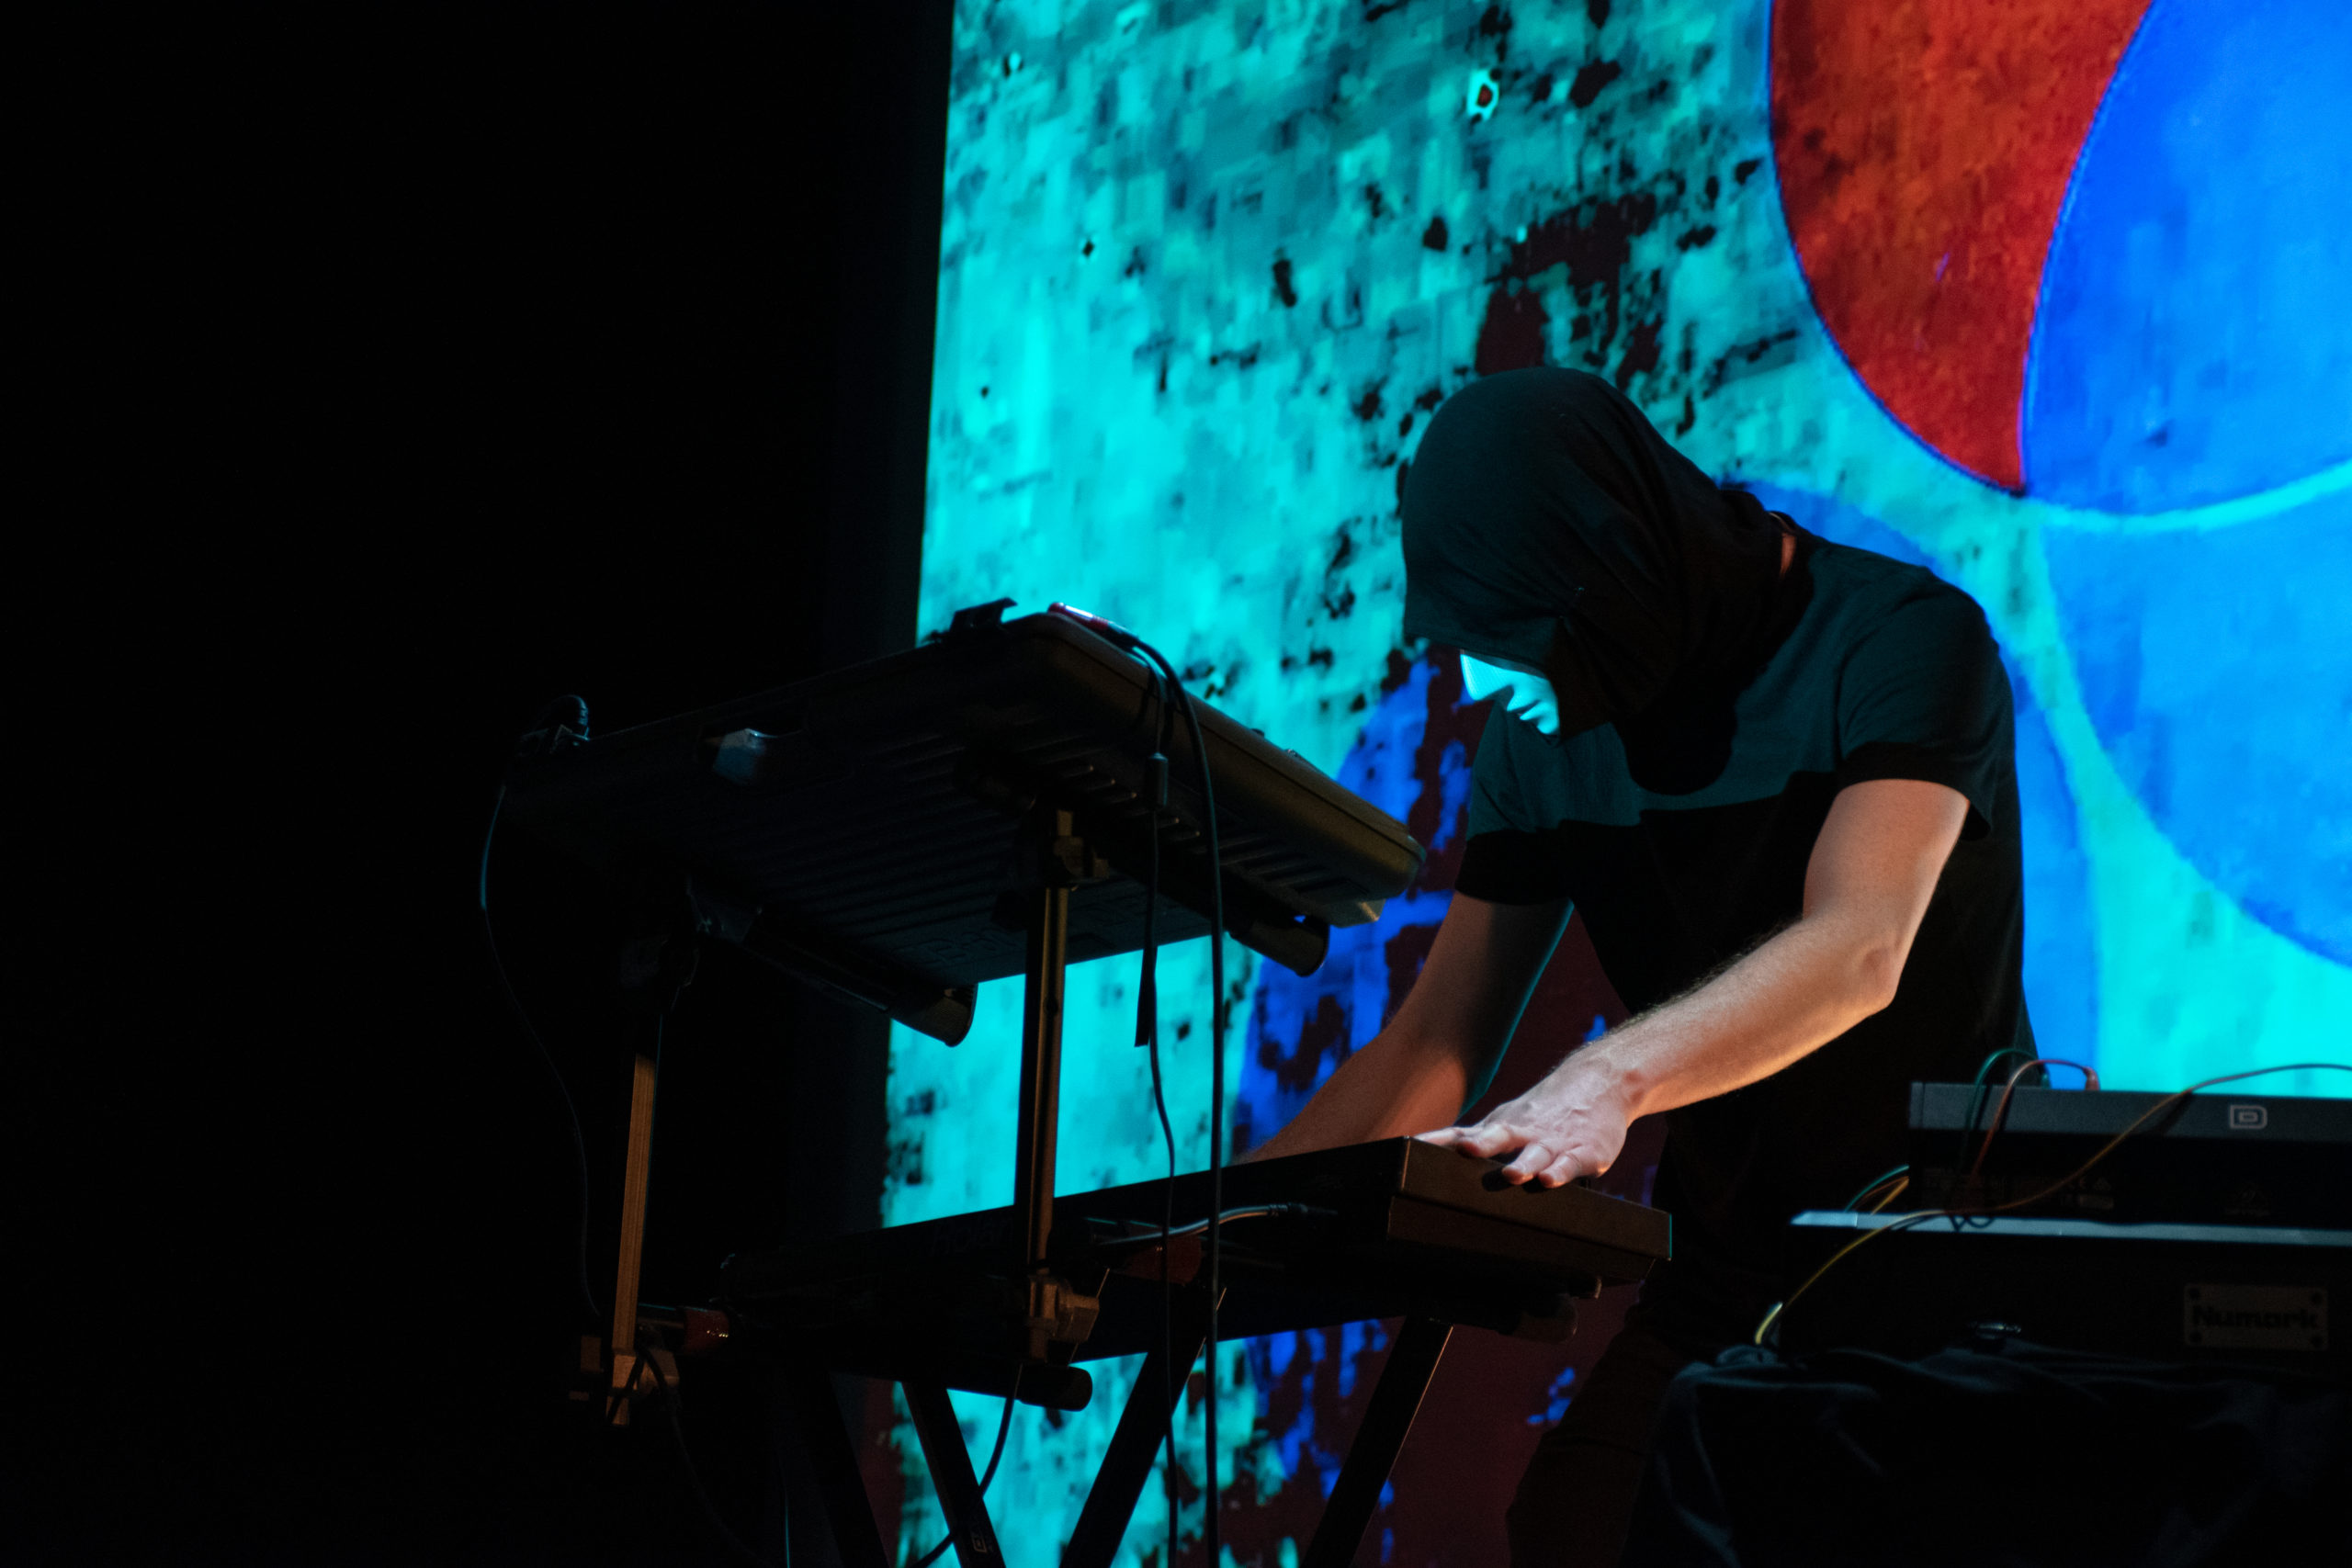 A masked musician plays the keyboard in front of a psychedelic display.